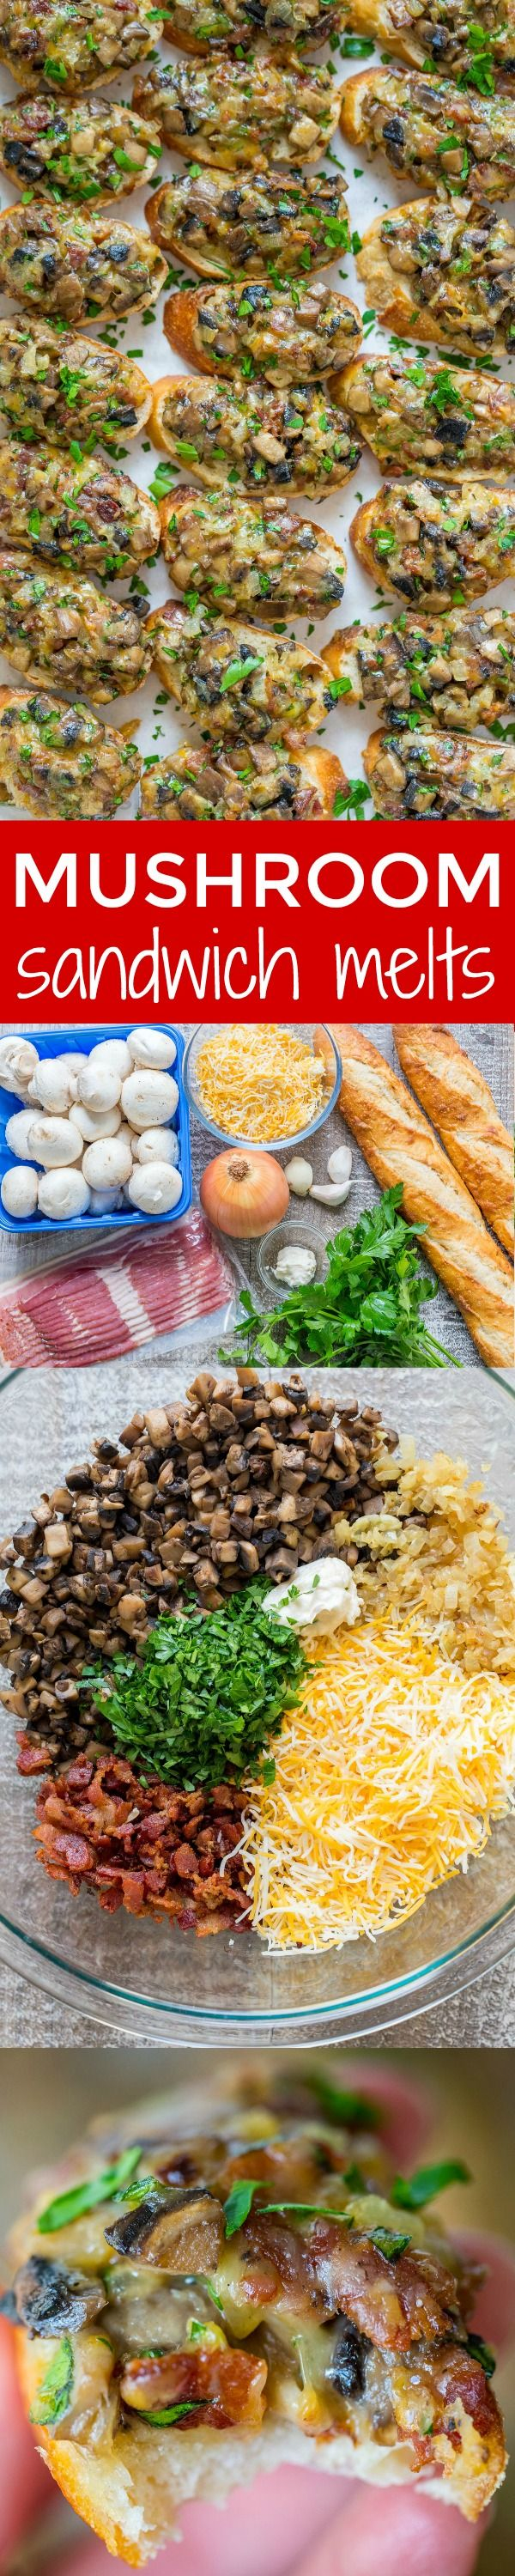 Cheesy bacon mushroom sandwich melts with make-ahead option! Mushrooms, cheese and bacon are a winning combination. These mushroom melts fly of the plate!   natashaskitchen.com